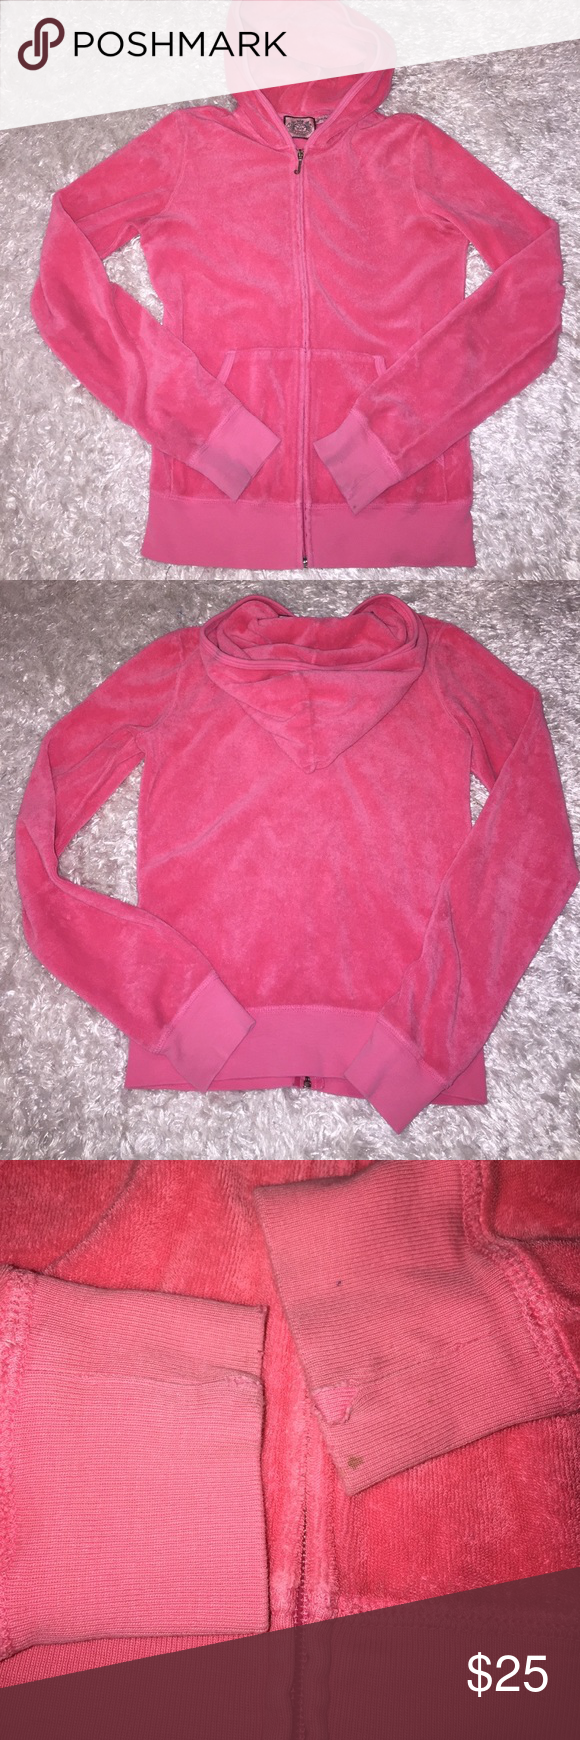 Juicy Couture Terry Cloth Zip Up Size P, fits as a S. Great condition, gentle signs of wear at bottom of sleeves. Color is hot pink, terry cloth material. Feel free to ask any questions! No trades sorry, & offers thru the offer button only! .. Juicy Couture Jackets & Coats